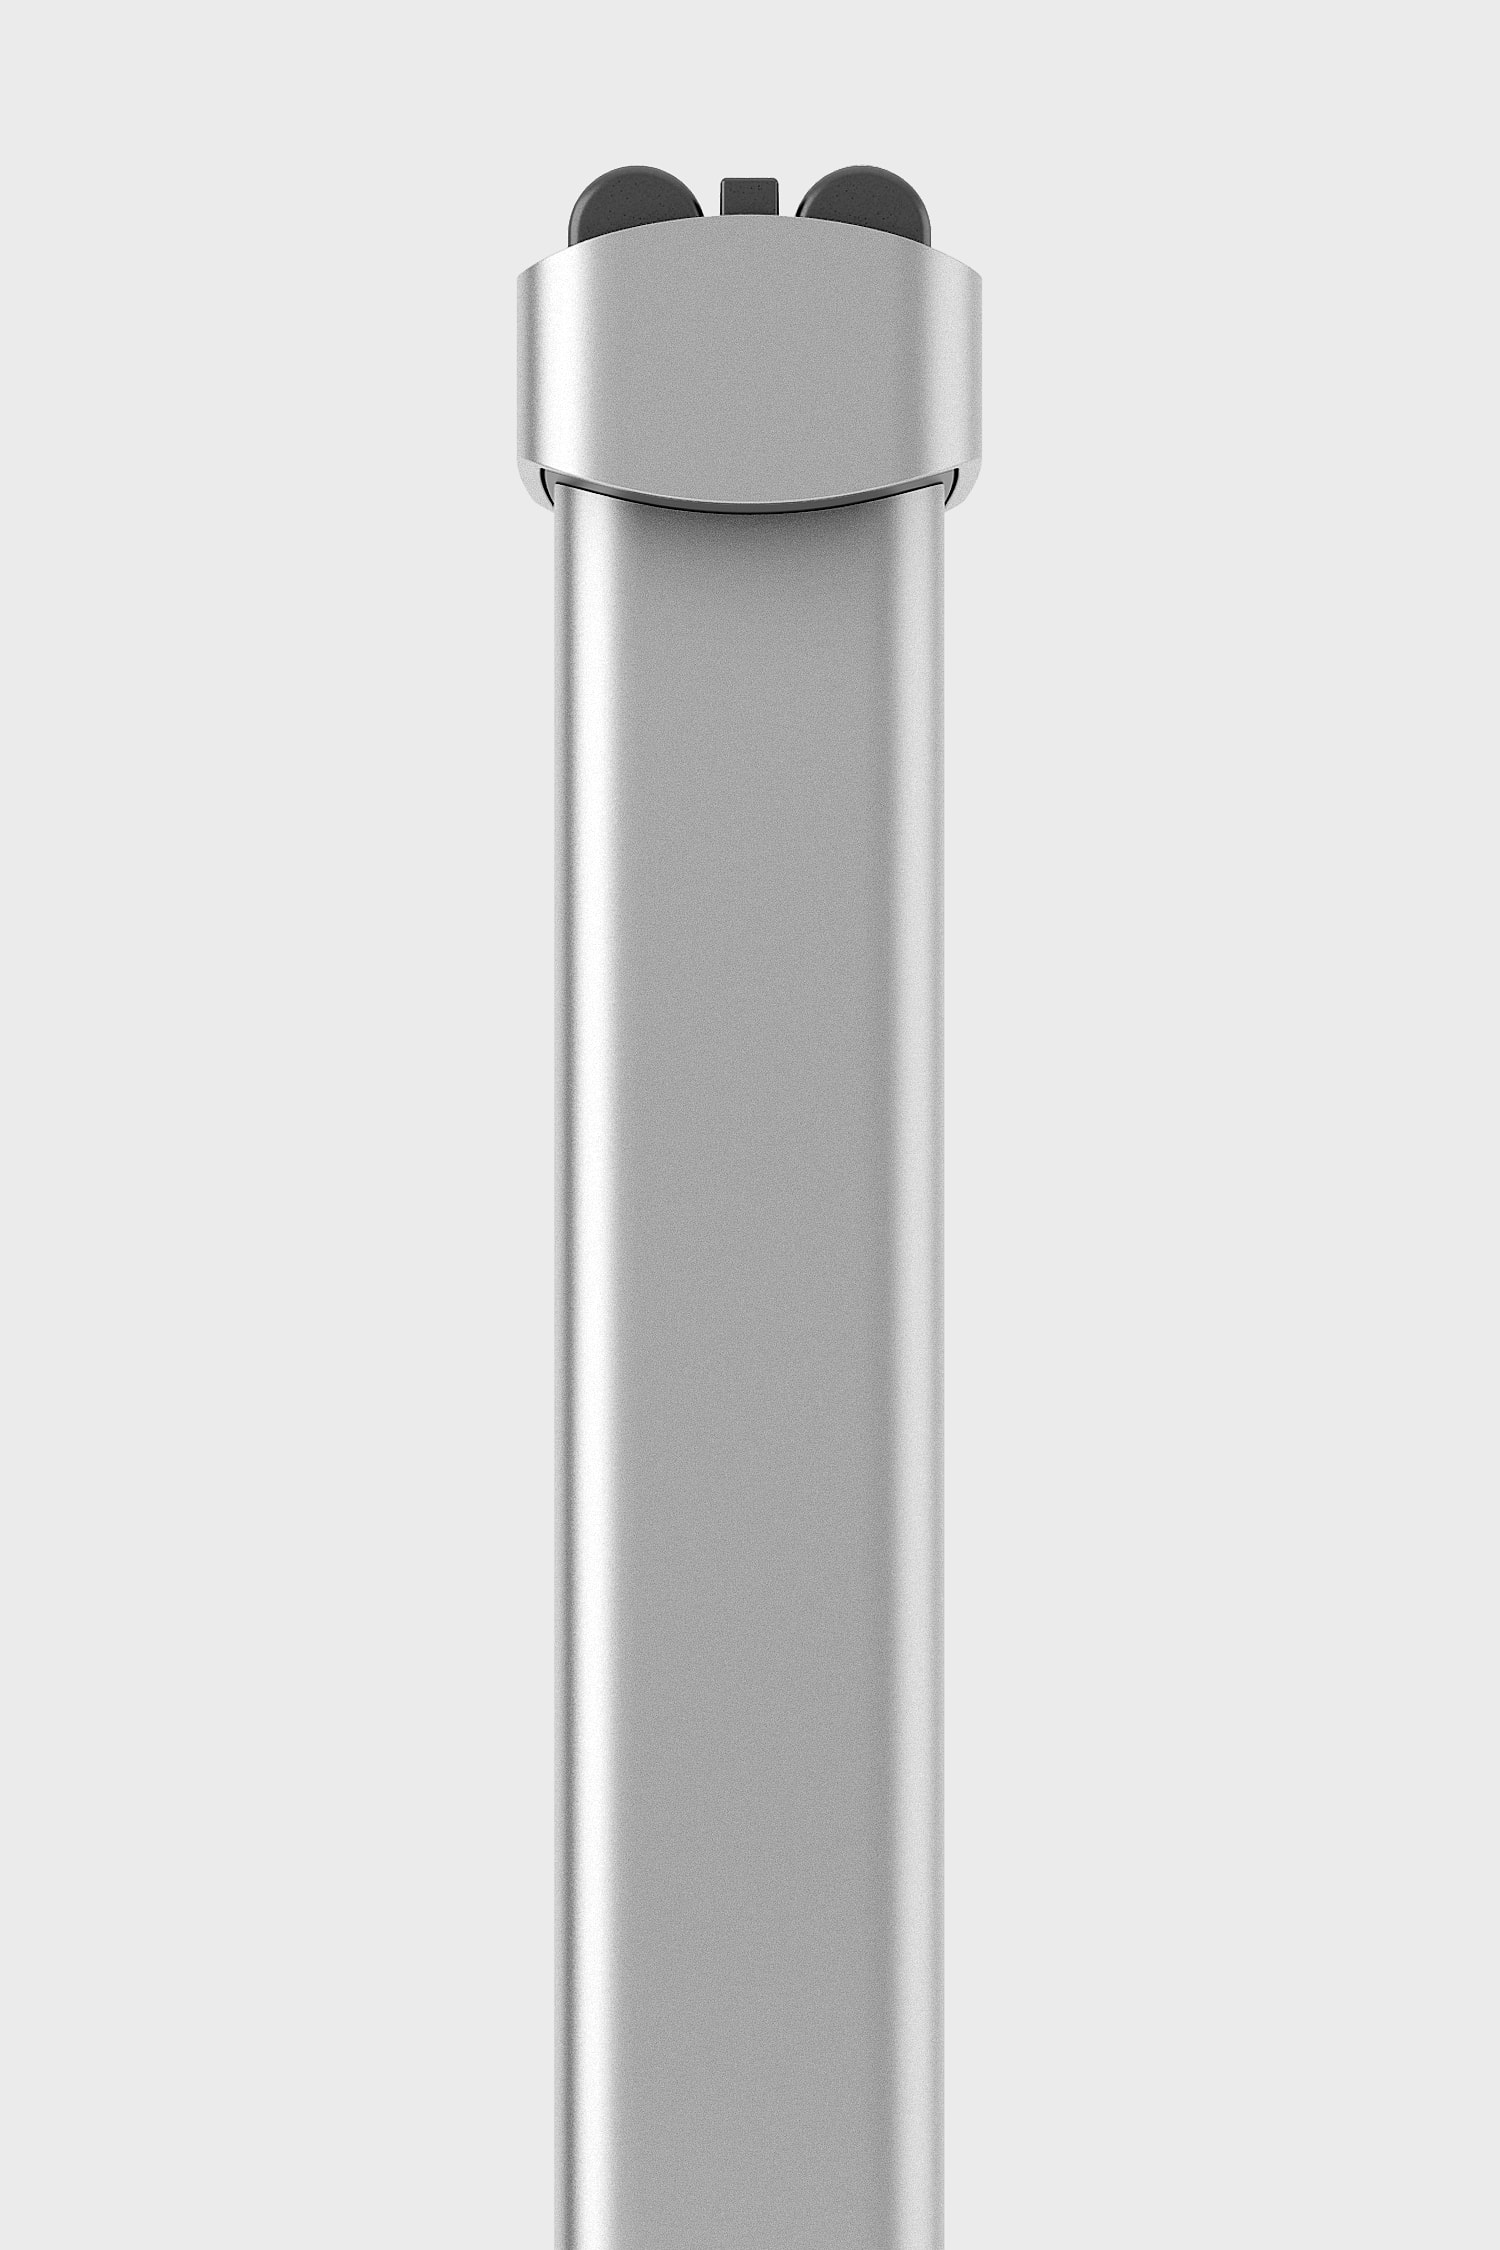 Side view of the Extrusion shaver, shown in the silver colourway.